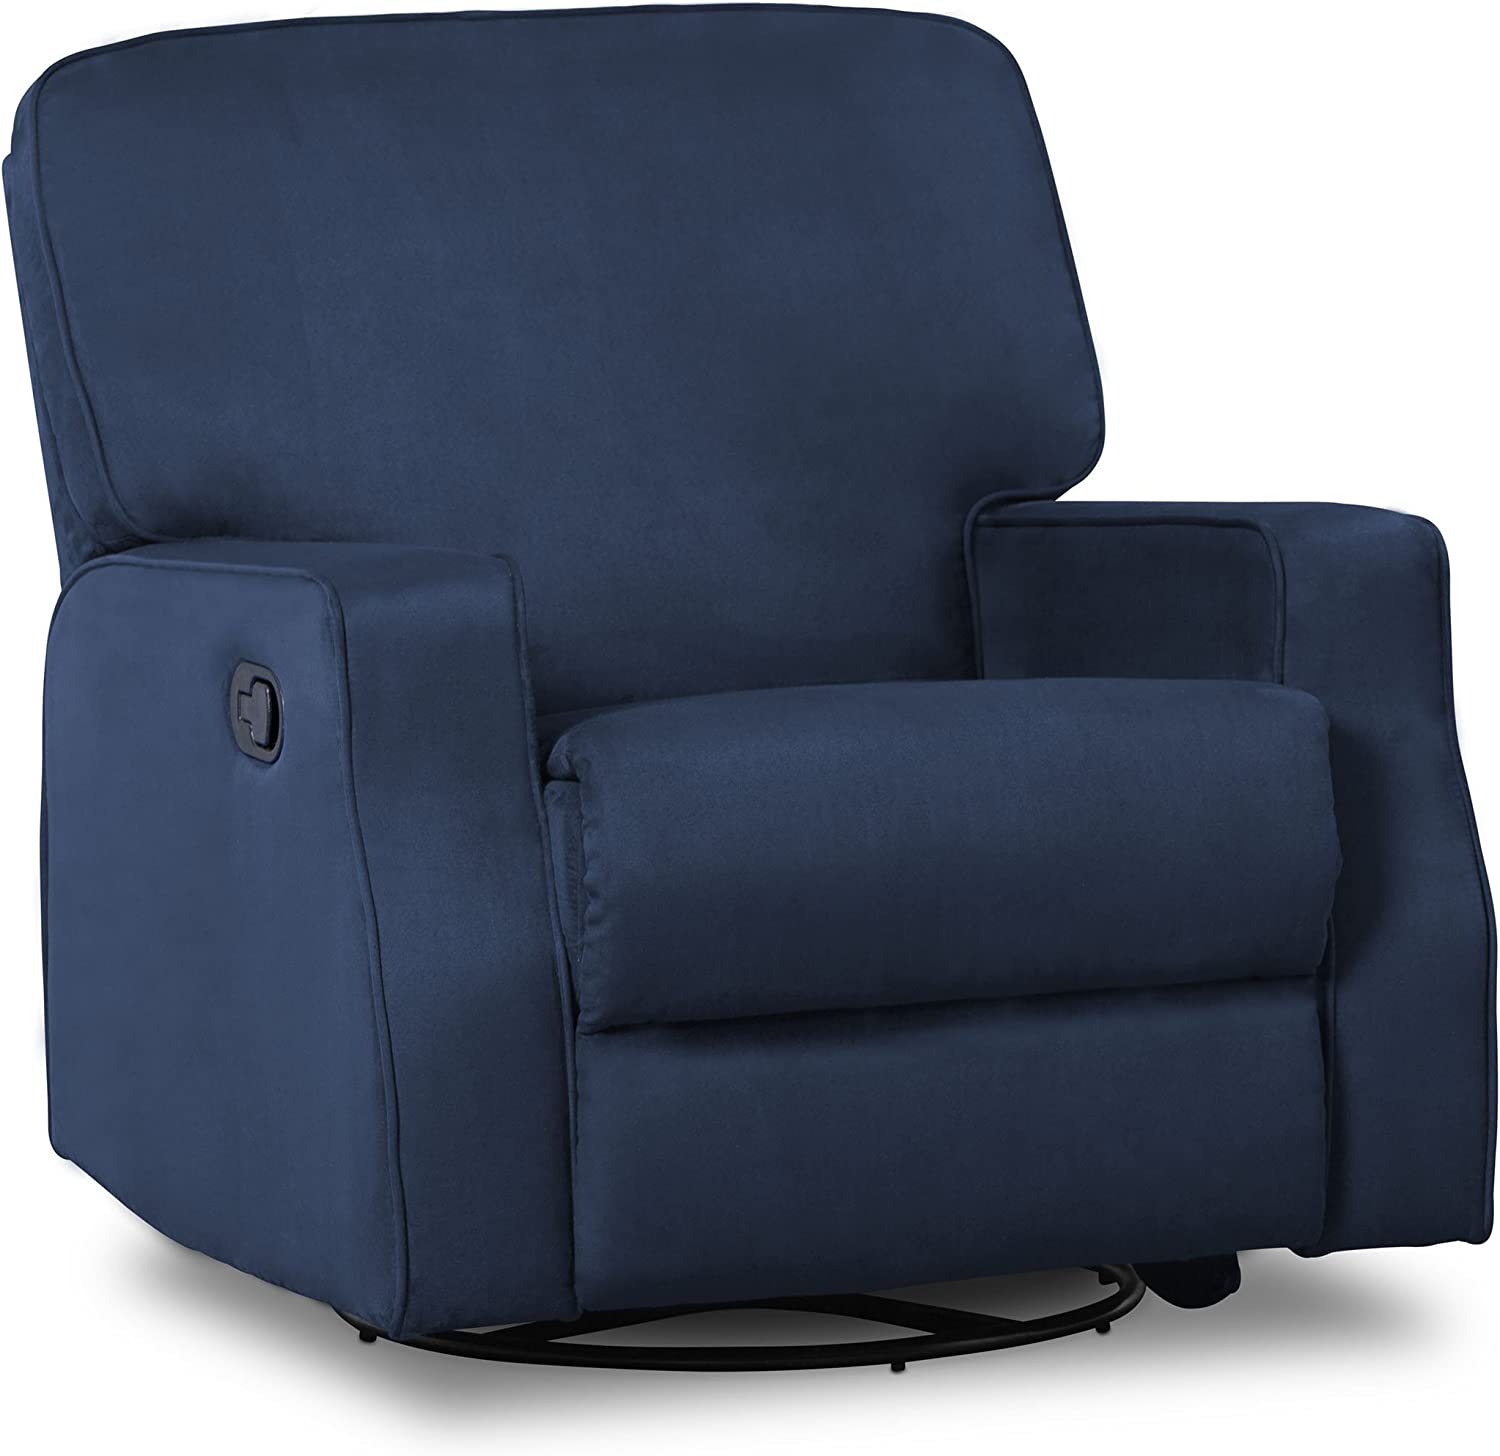 Delta Home Chambers Bay Recliner, Navy